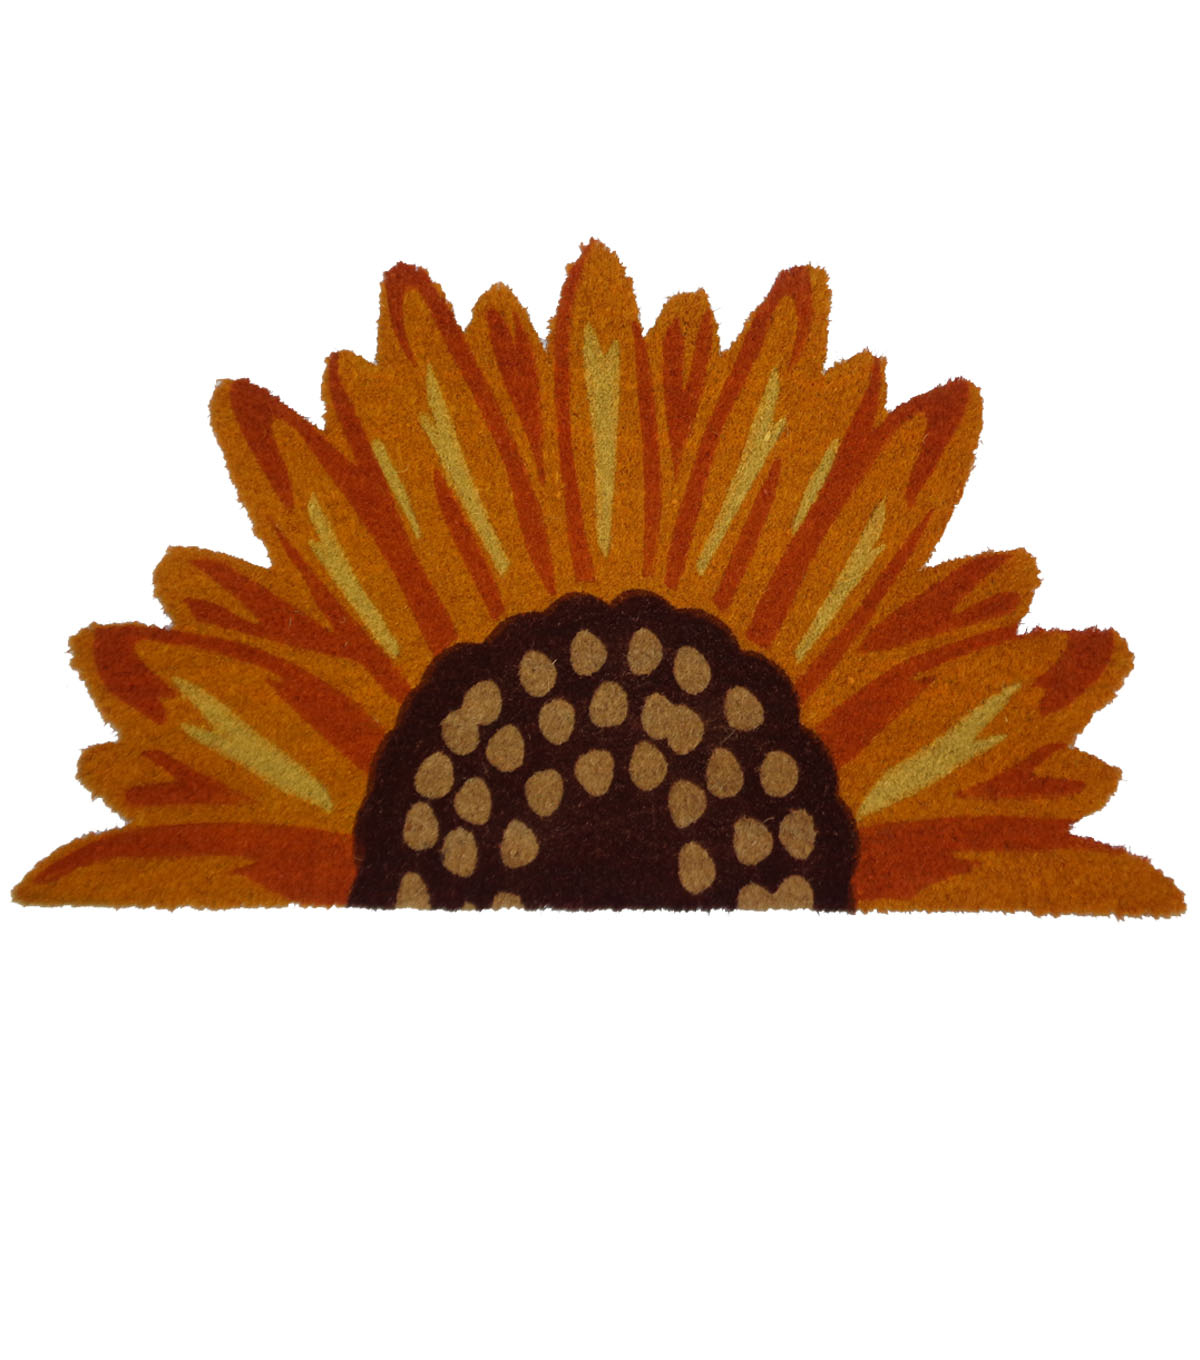 Simply Autumn Sunflower Shaped Coir Mat